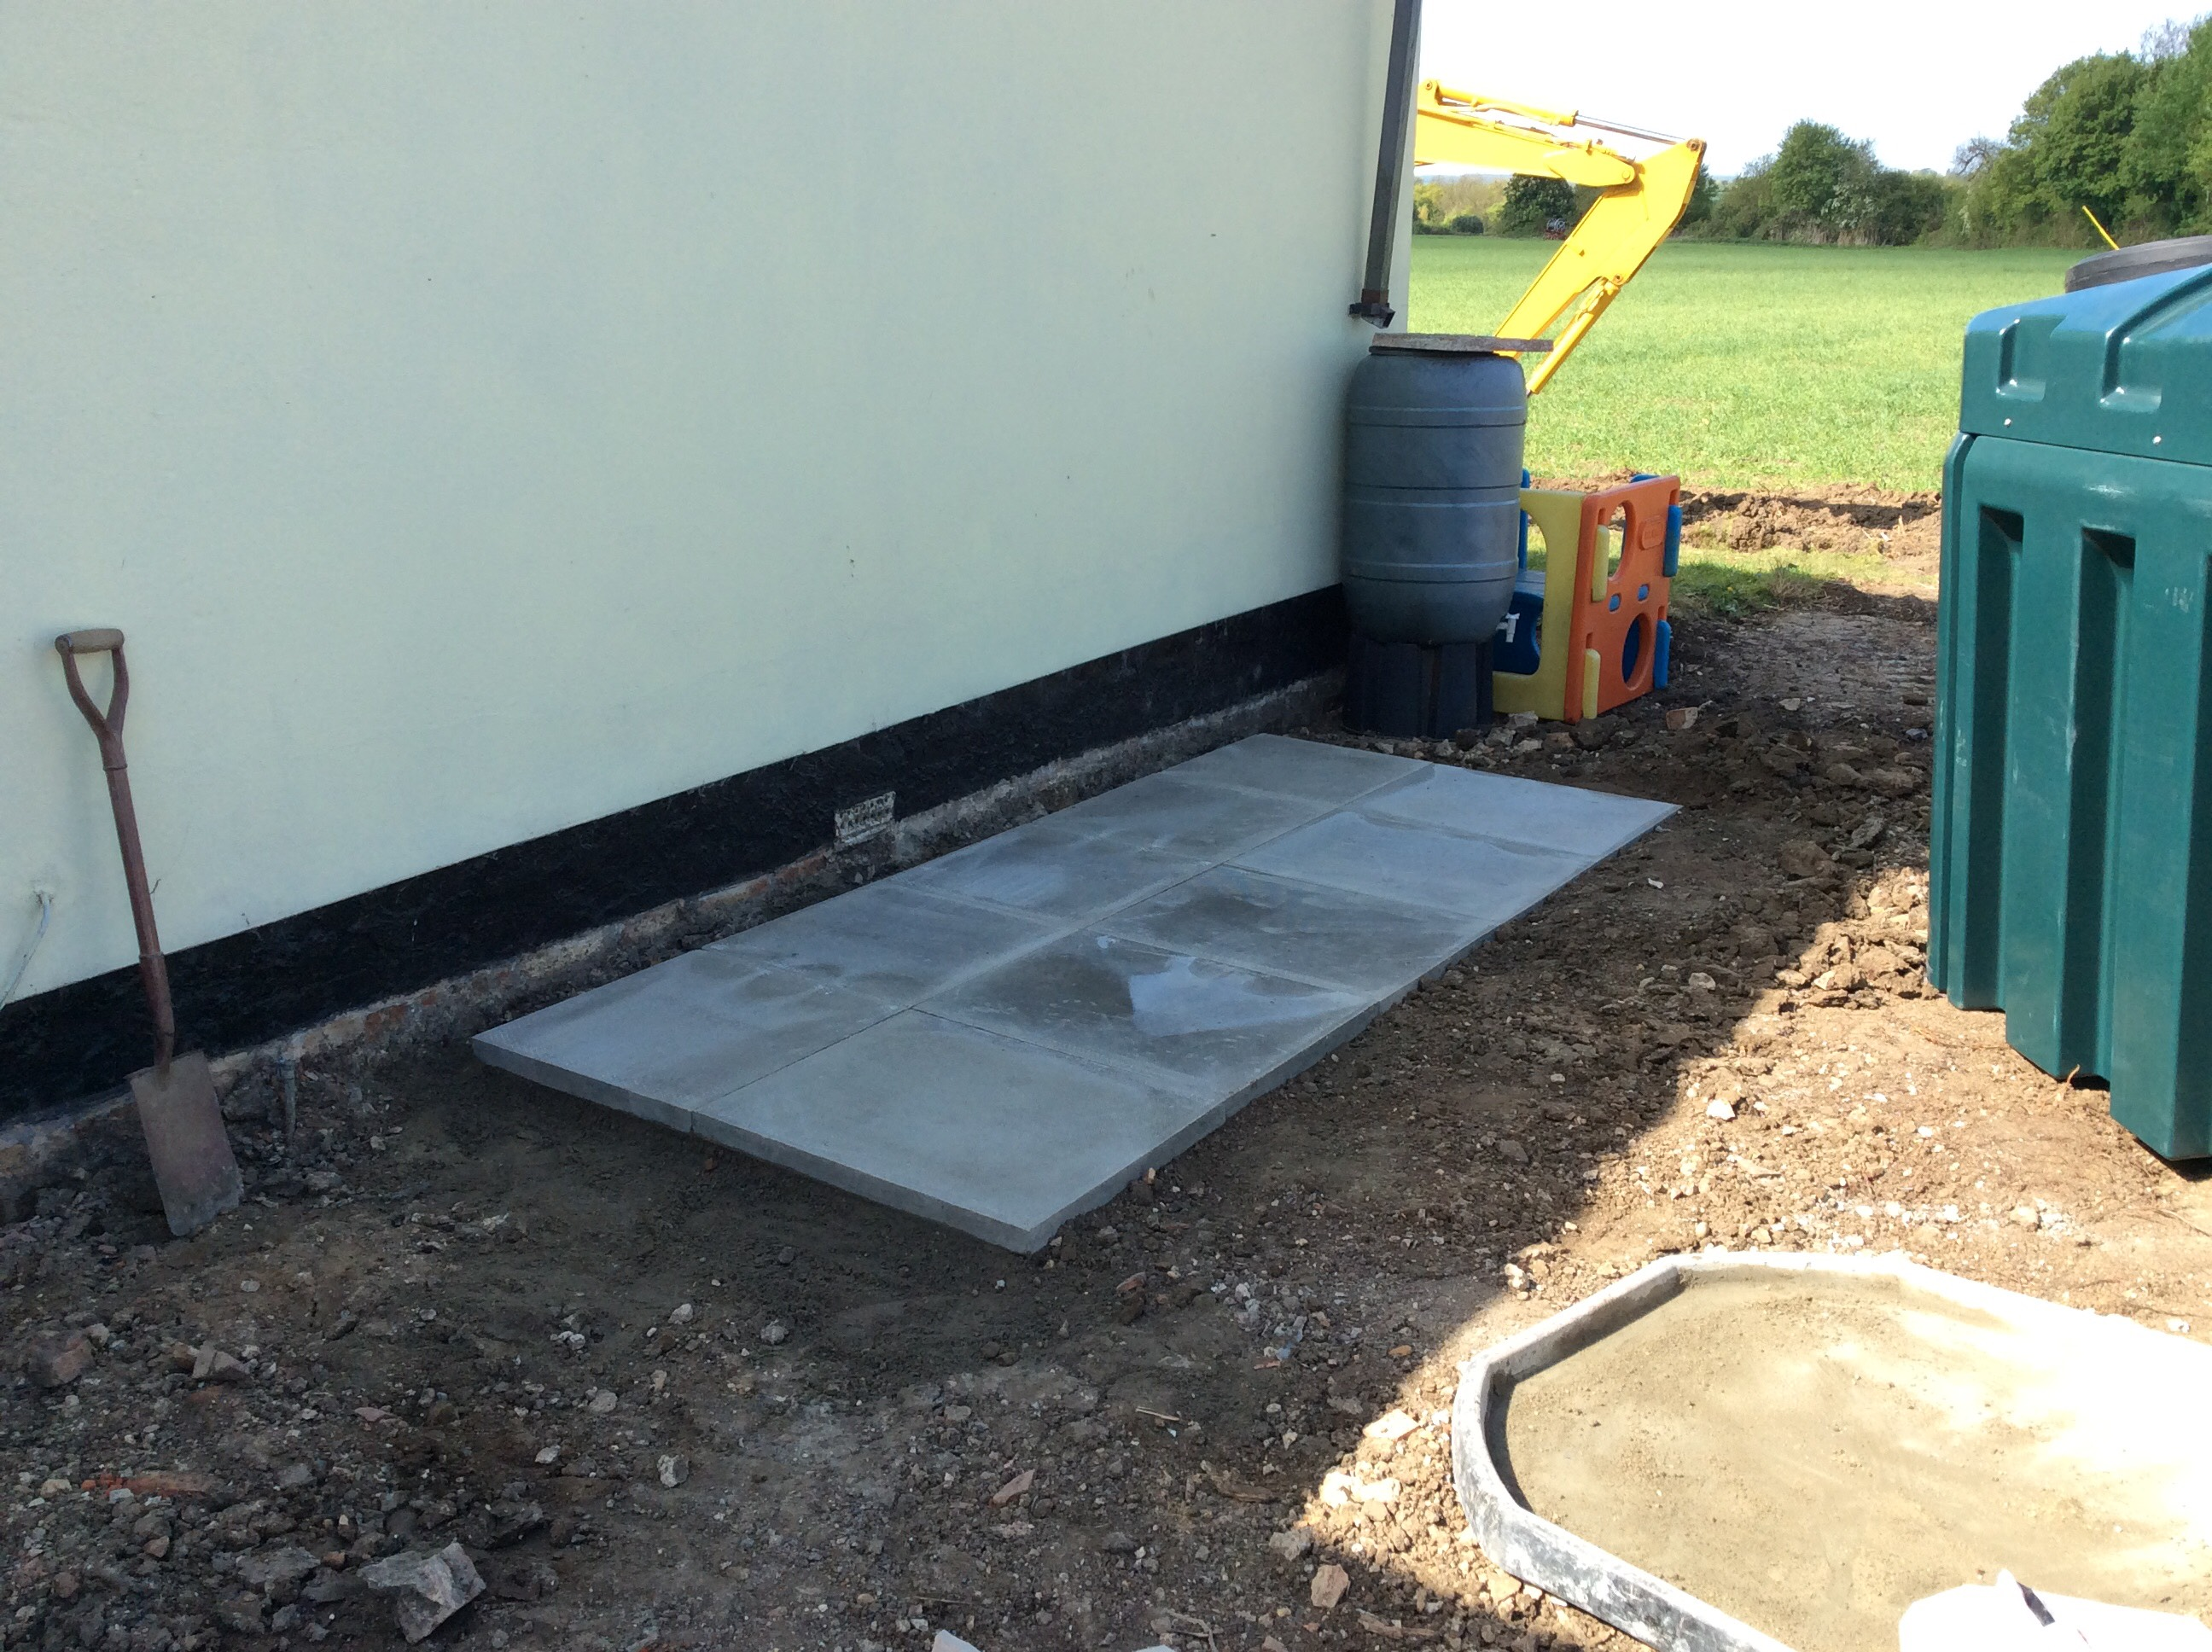 Lawshall tank base - Suffolk Oil Solutions